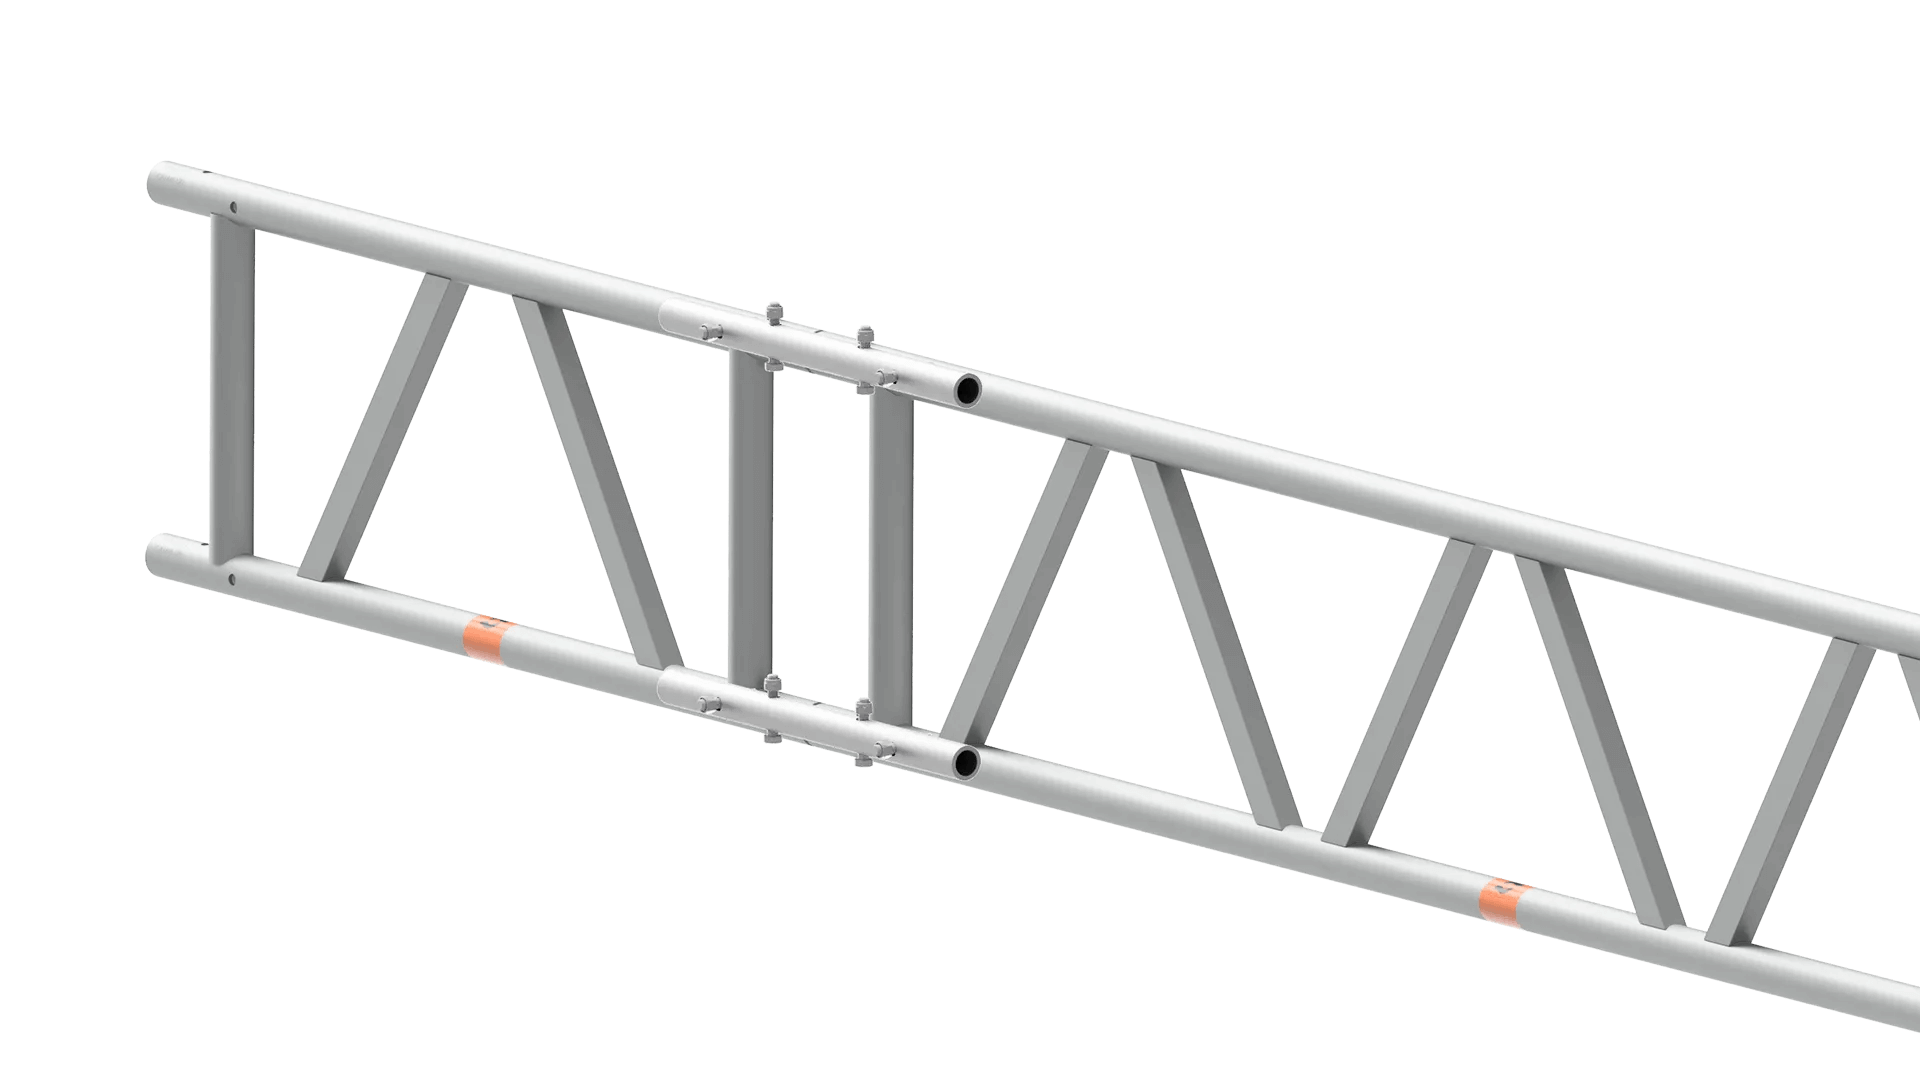 scaffolding beams jointed